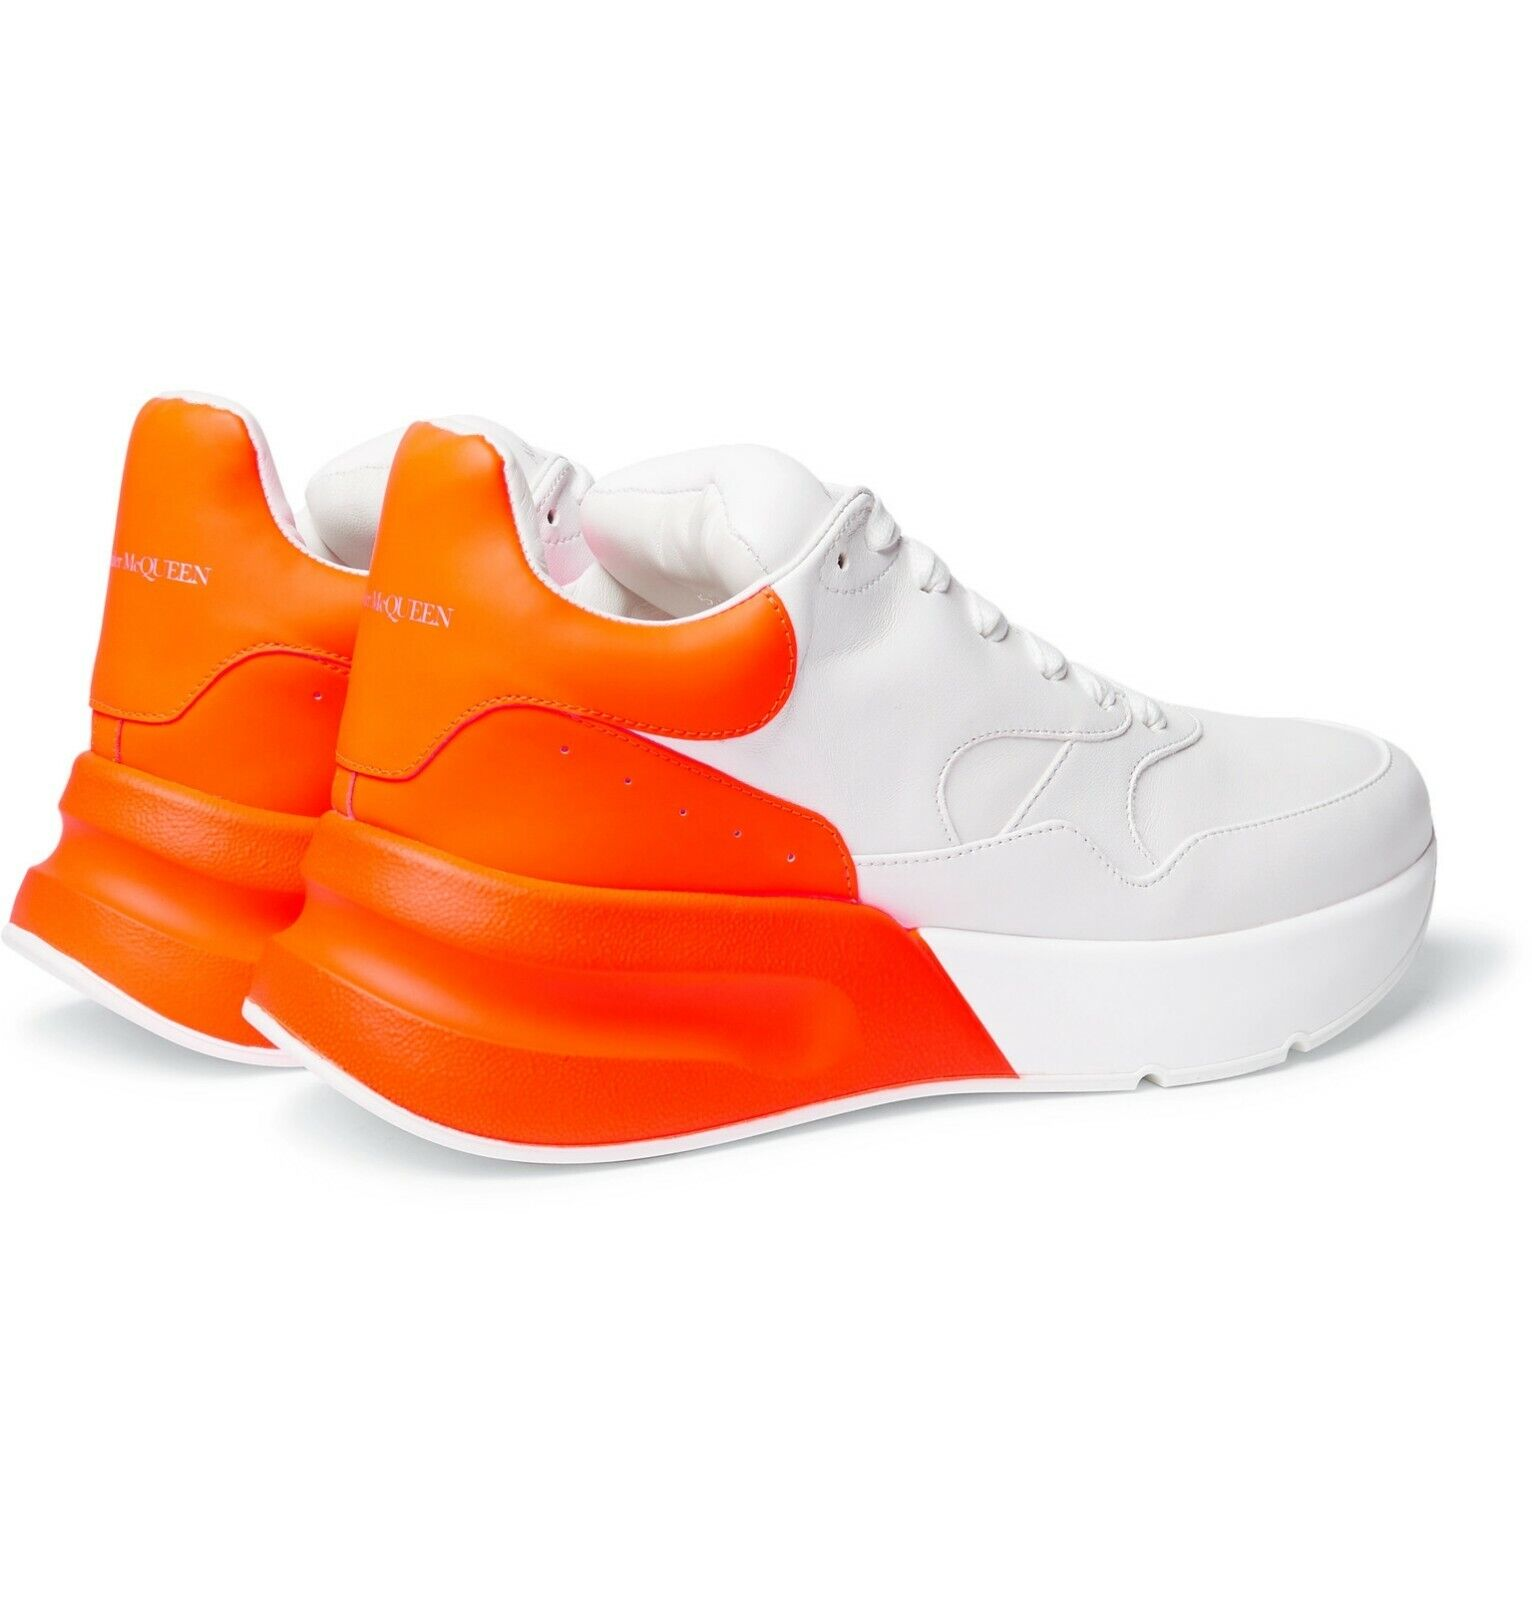 ALEXANDER MCQUEEN EXAGGERATED-Sole Fluorescent Cuir paniers Taille UK10.5